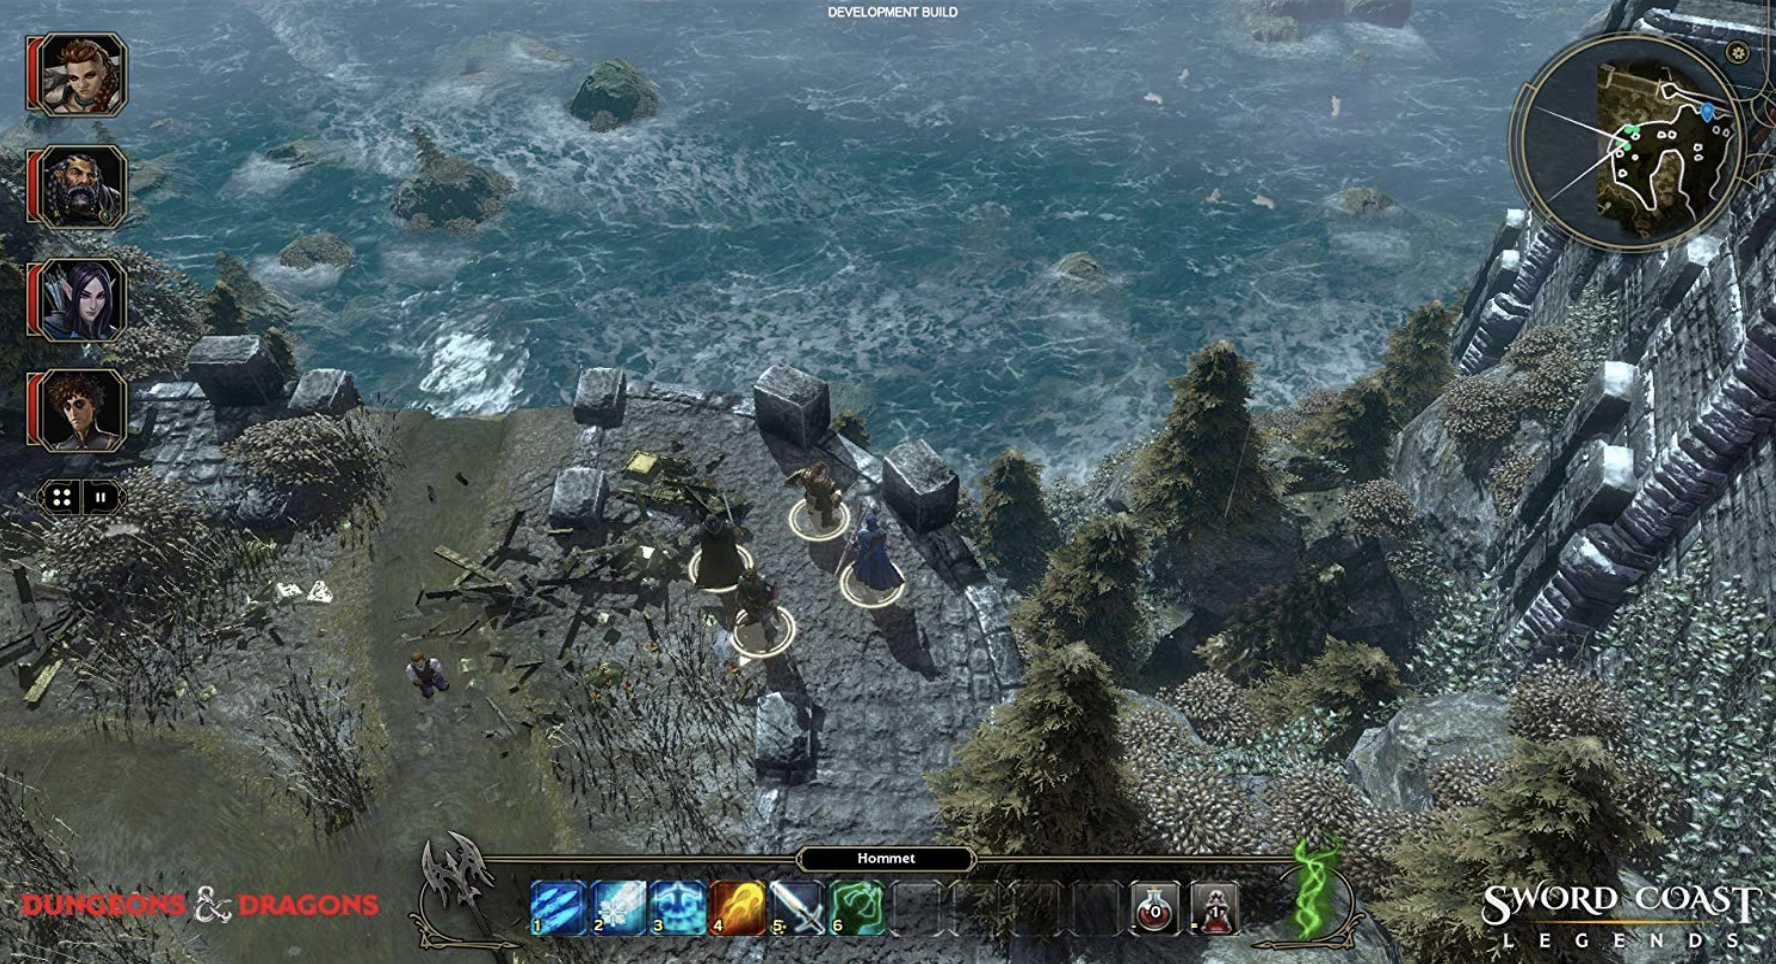 Sword Coast Legends Review Actual Game Preview